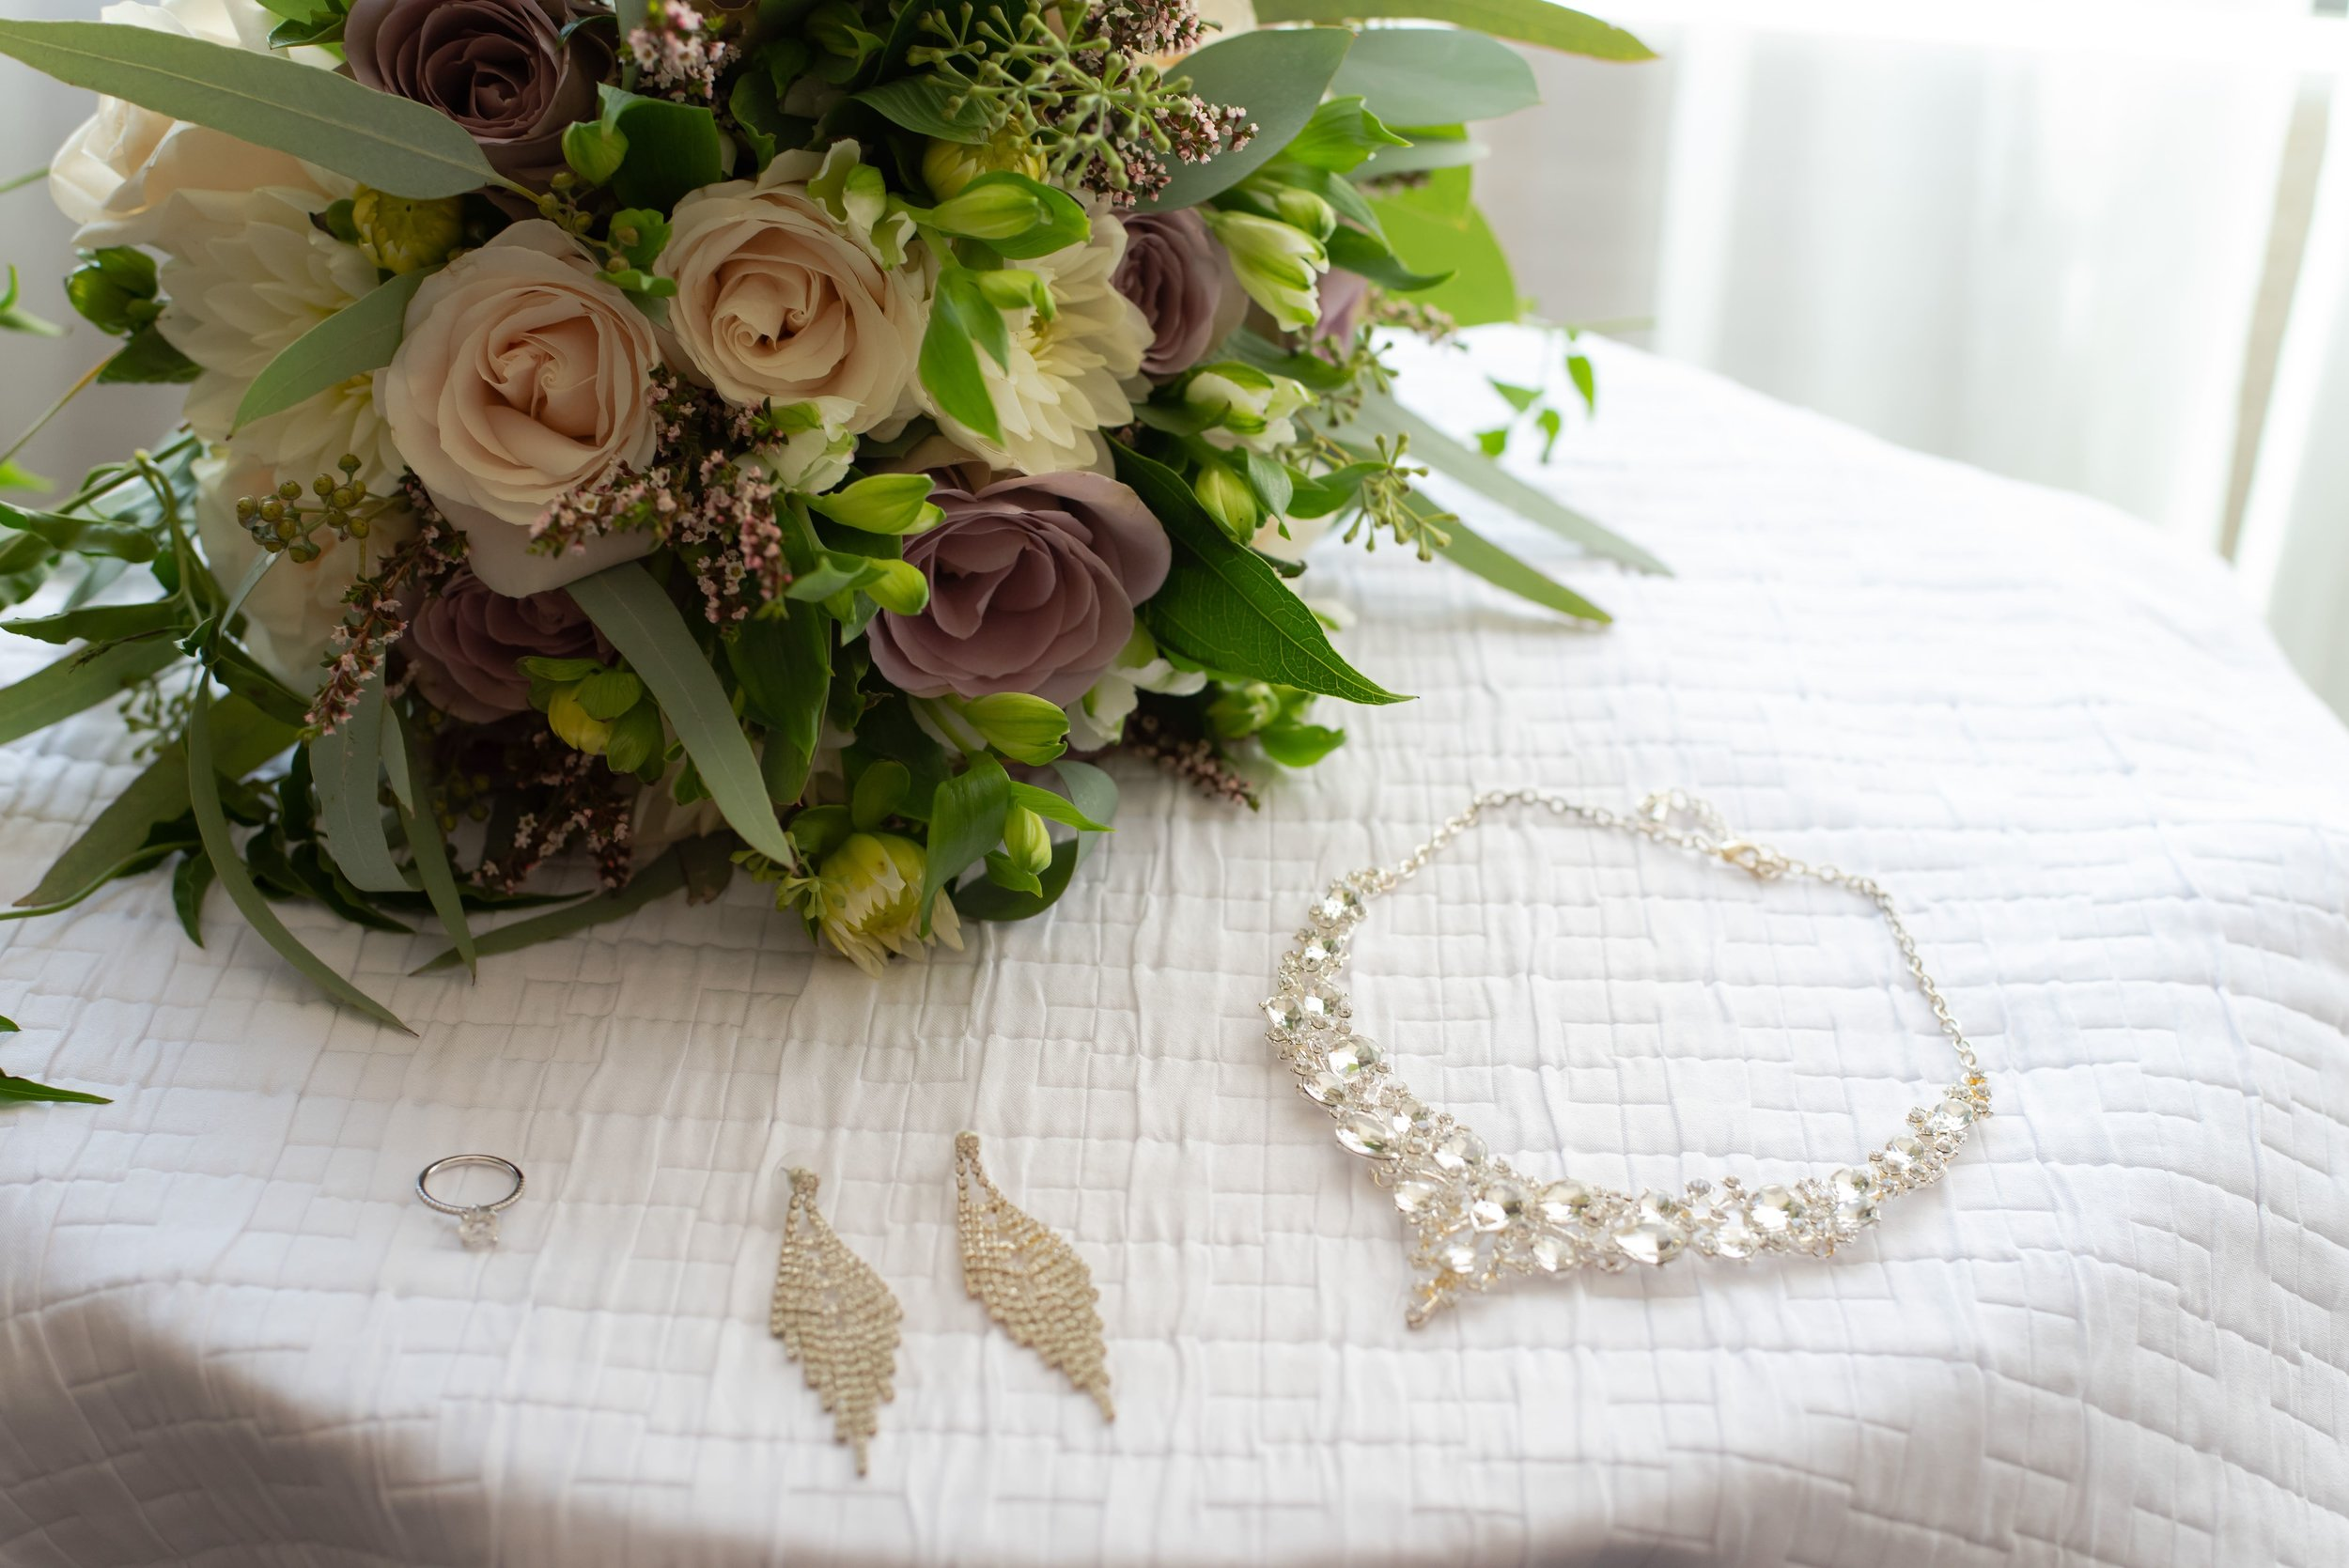 A necklace, earrings, an engagement ring, and a bouquet on a round table with a white tablecloth.